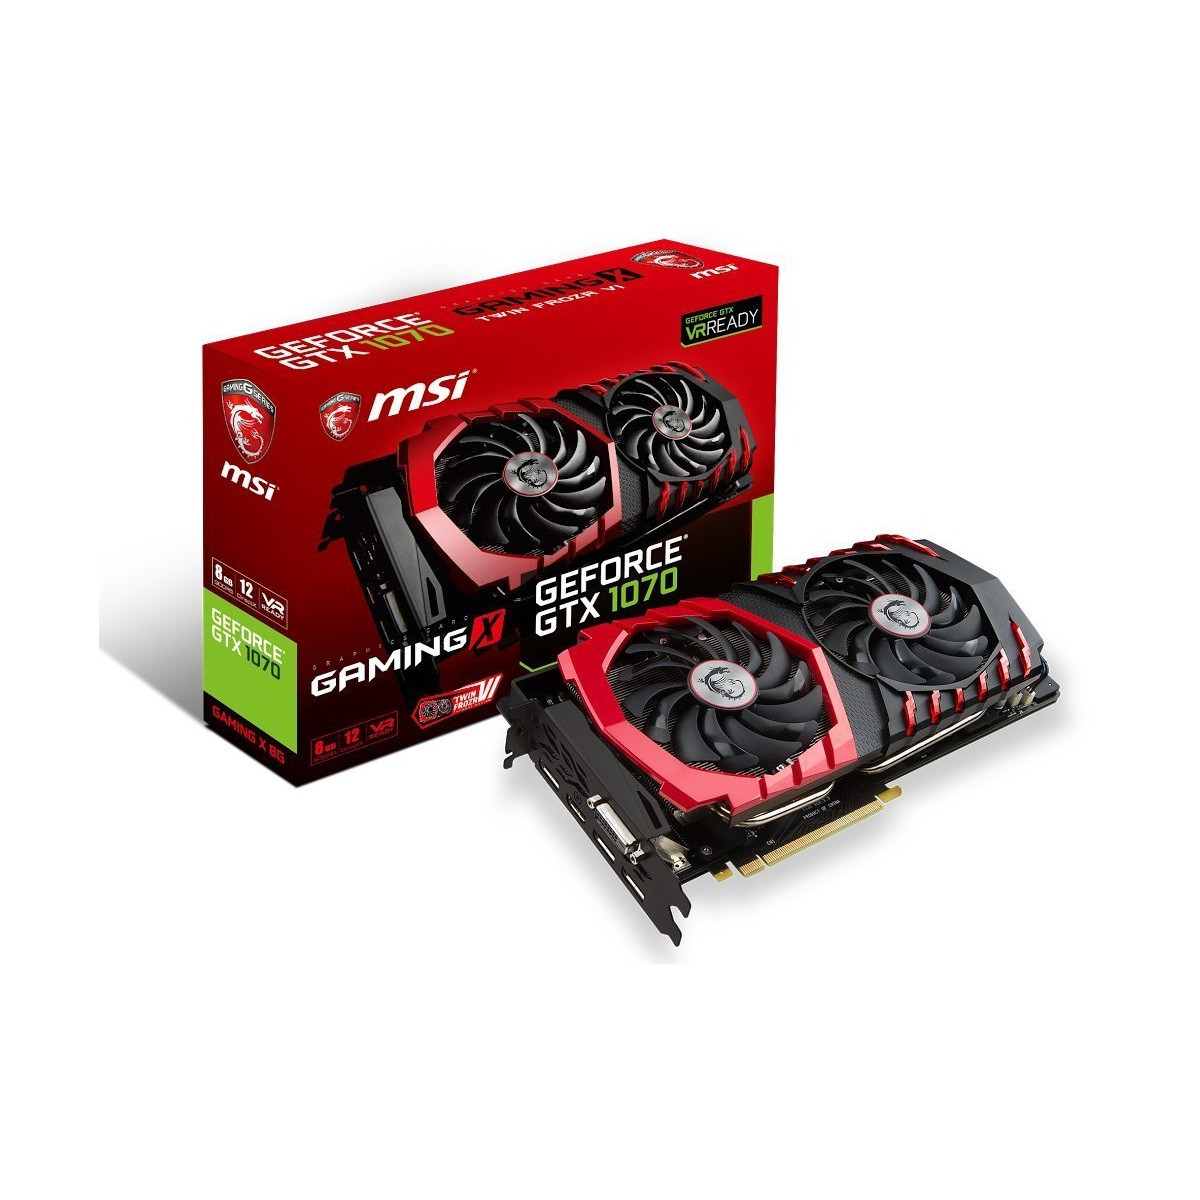 Vga_Card_MSI_GTX1070_GAMING_X_8G-1200x1200